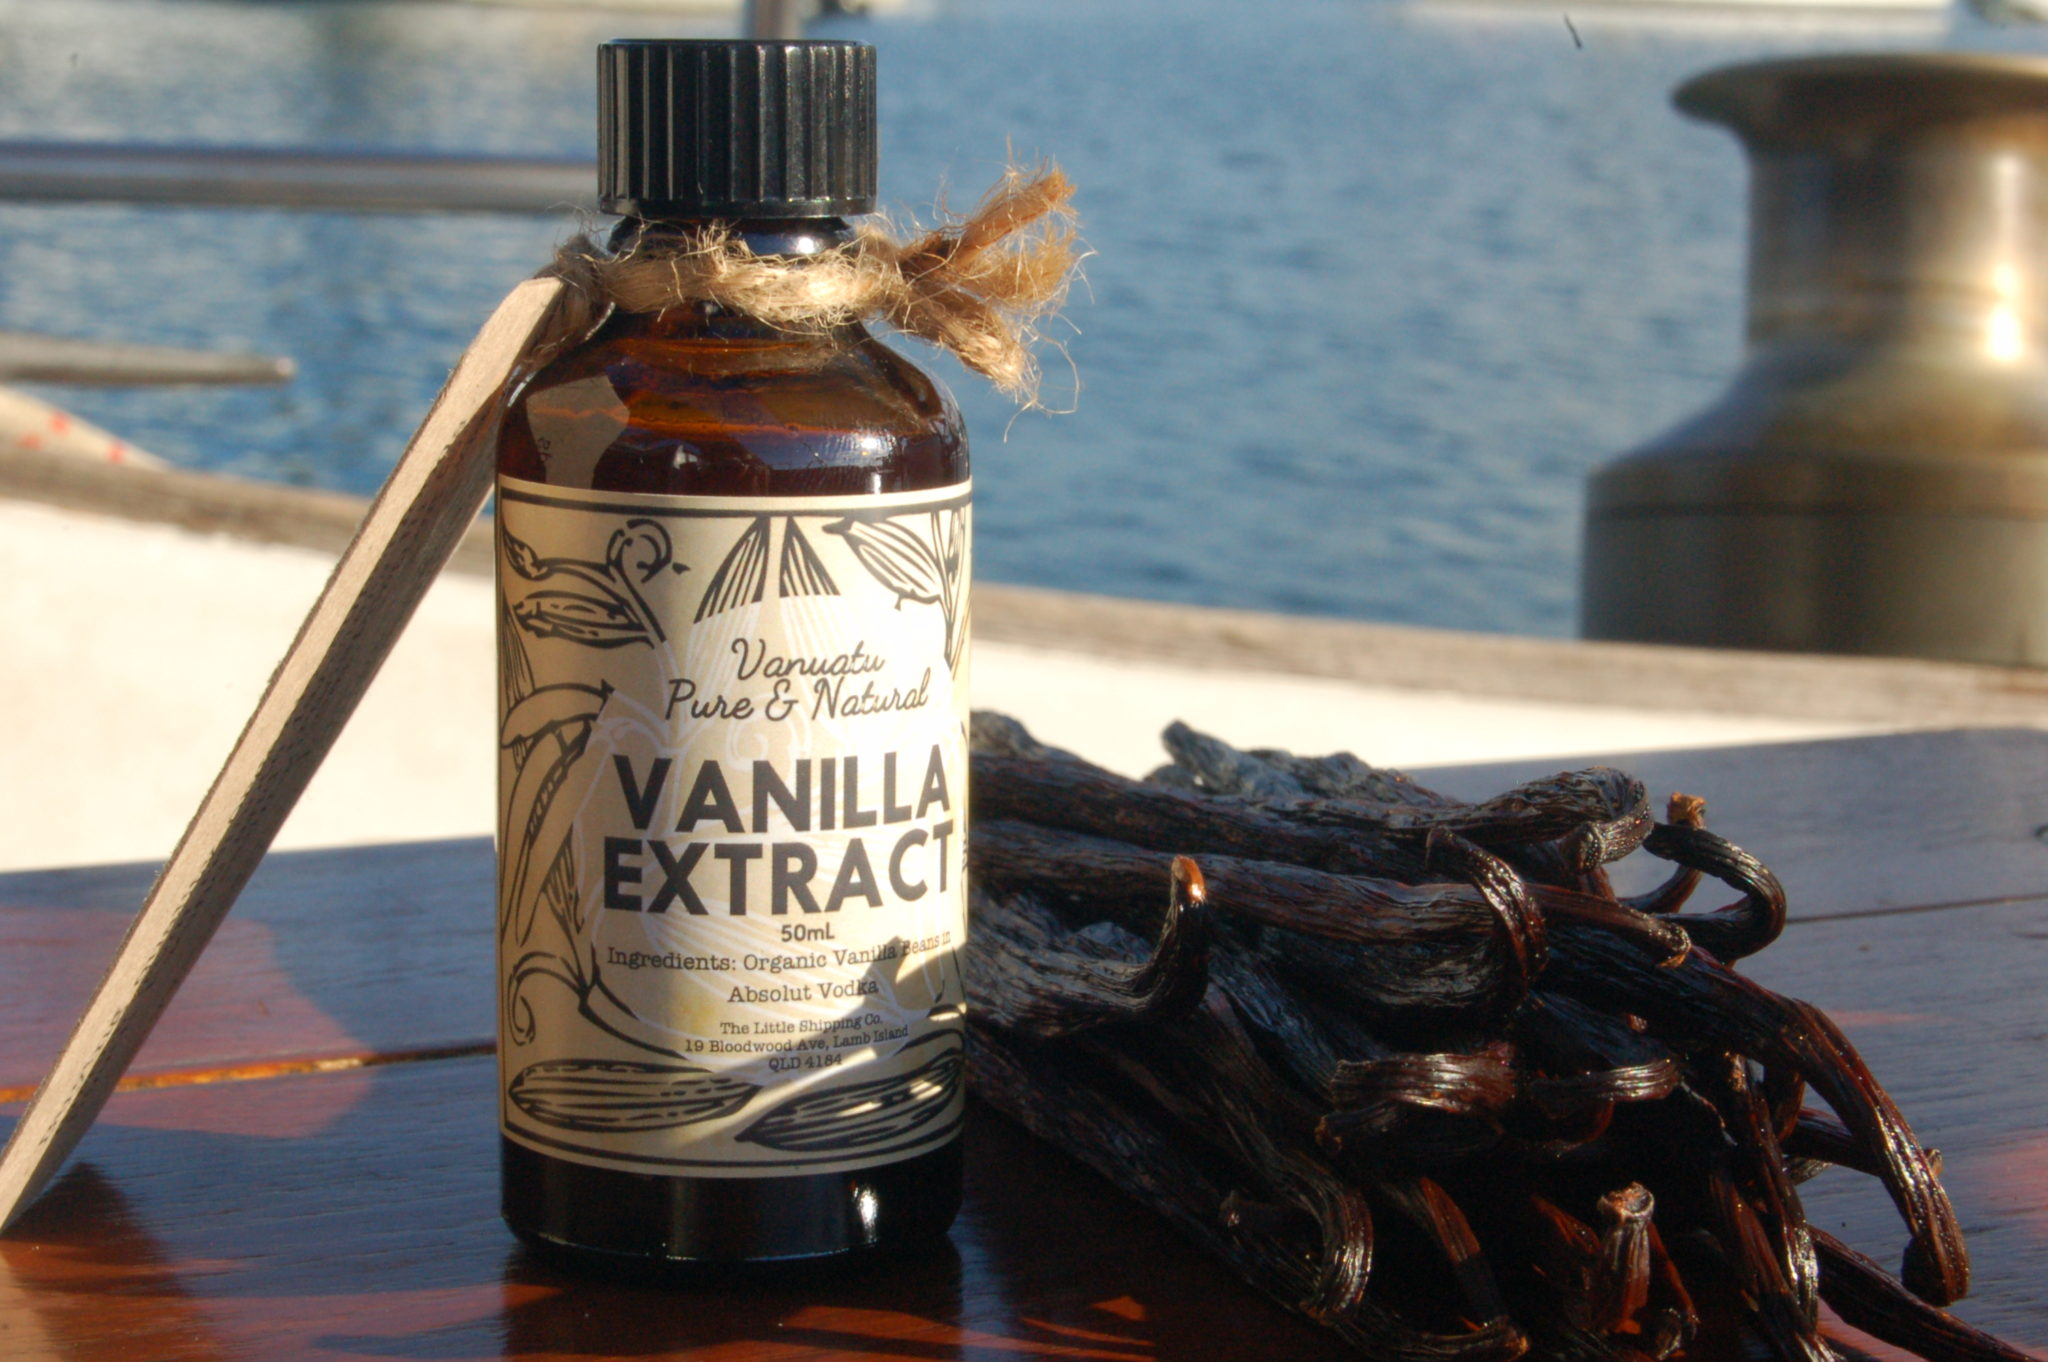 Vanilla Beans sailed by sailboat from the remote Vanuatu islands